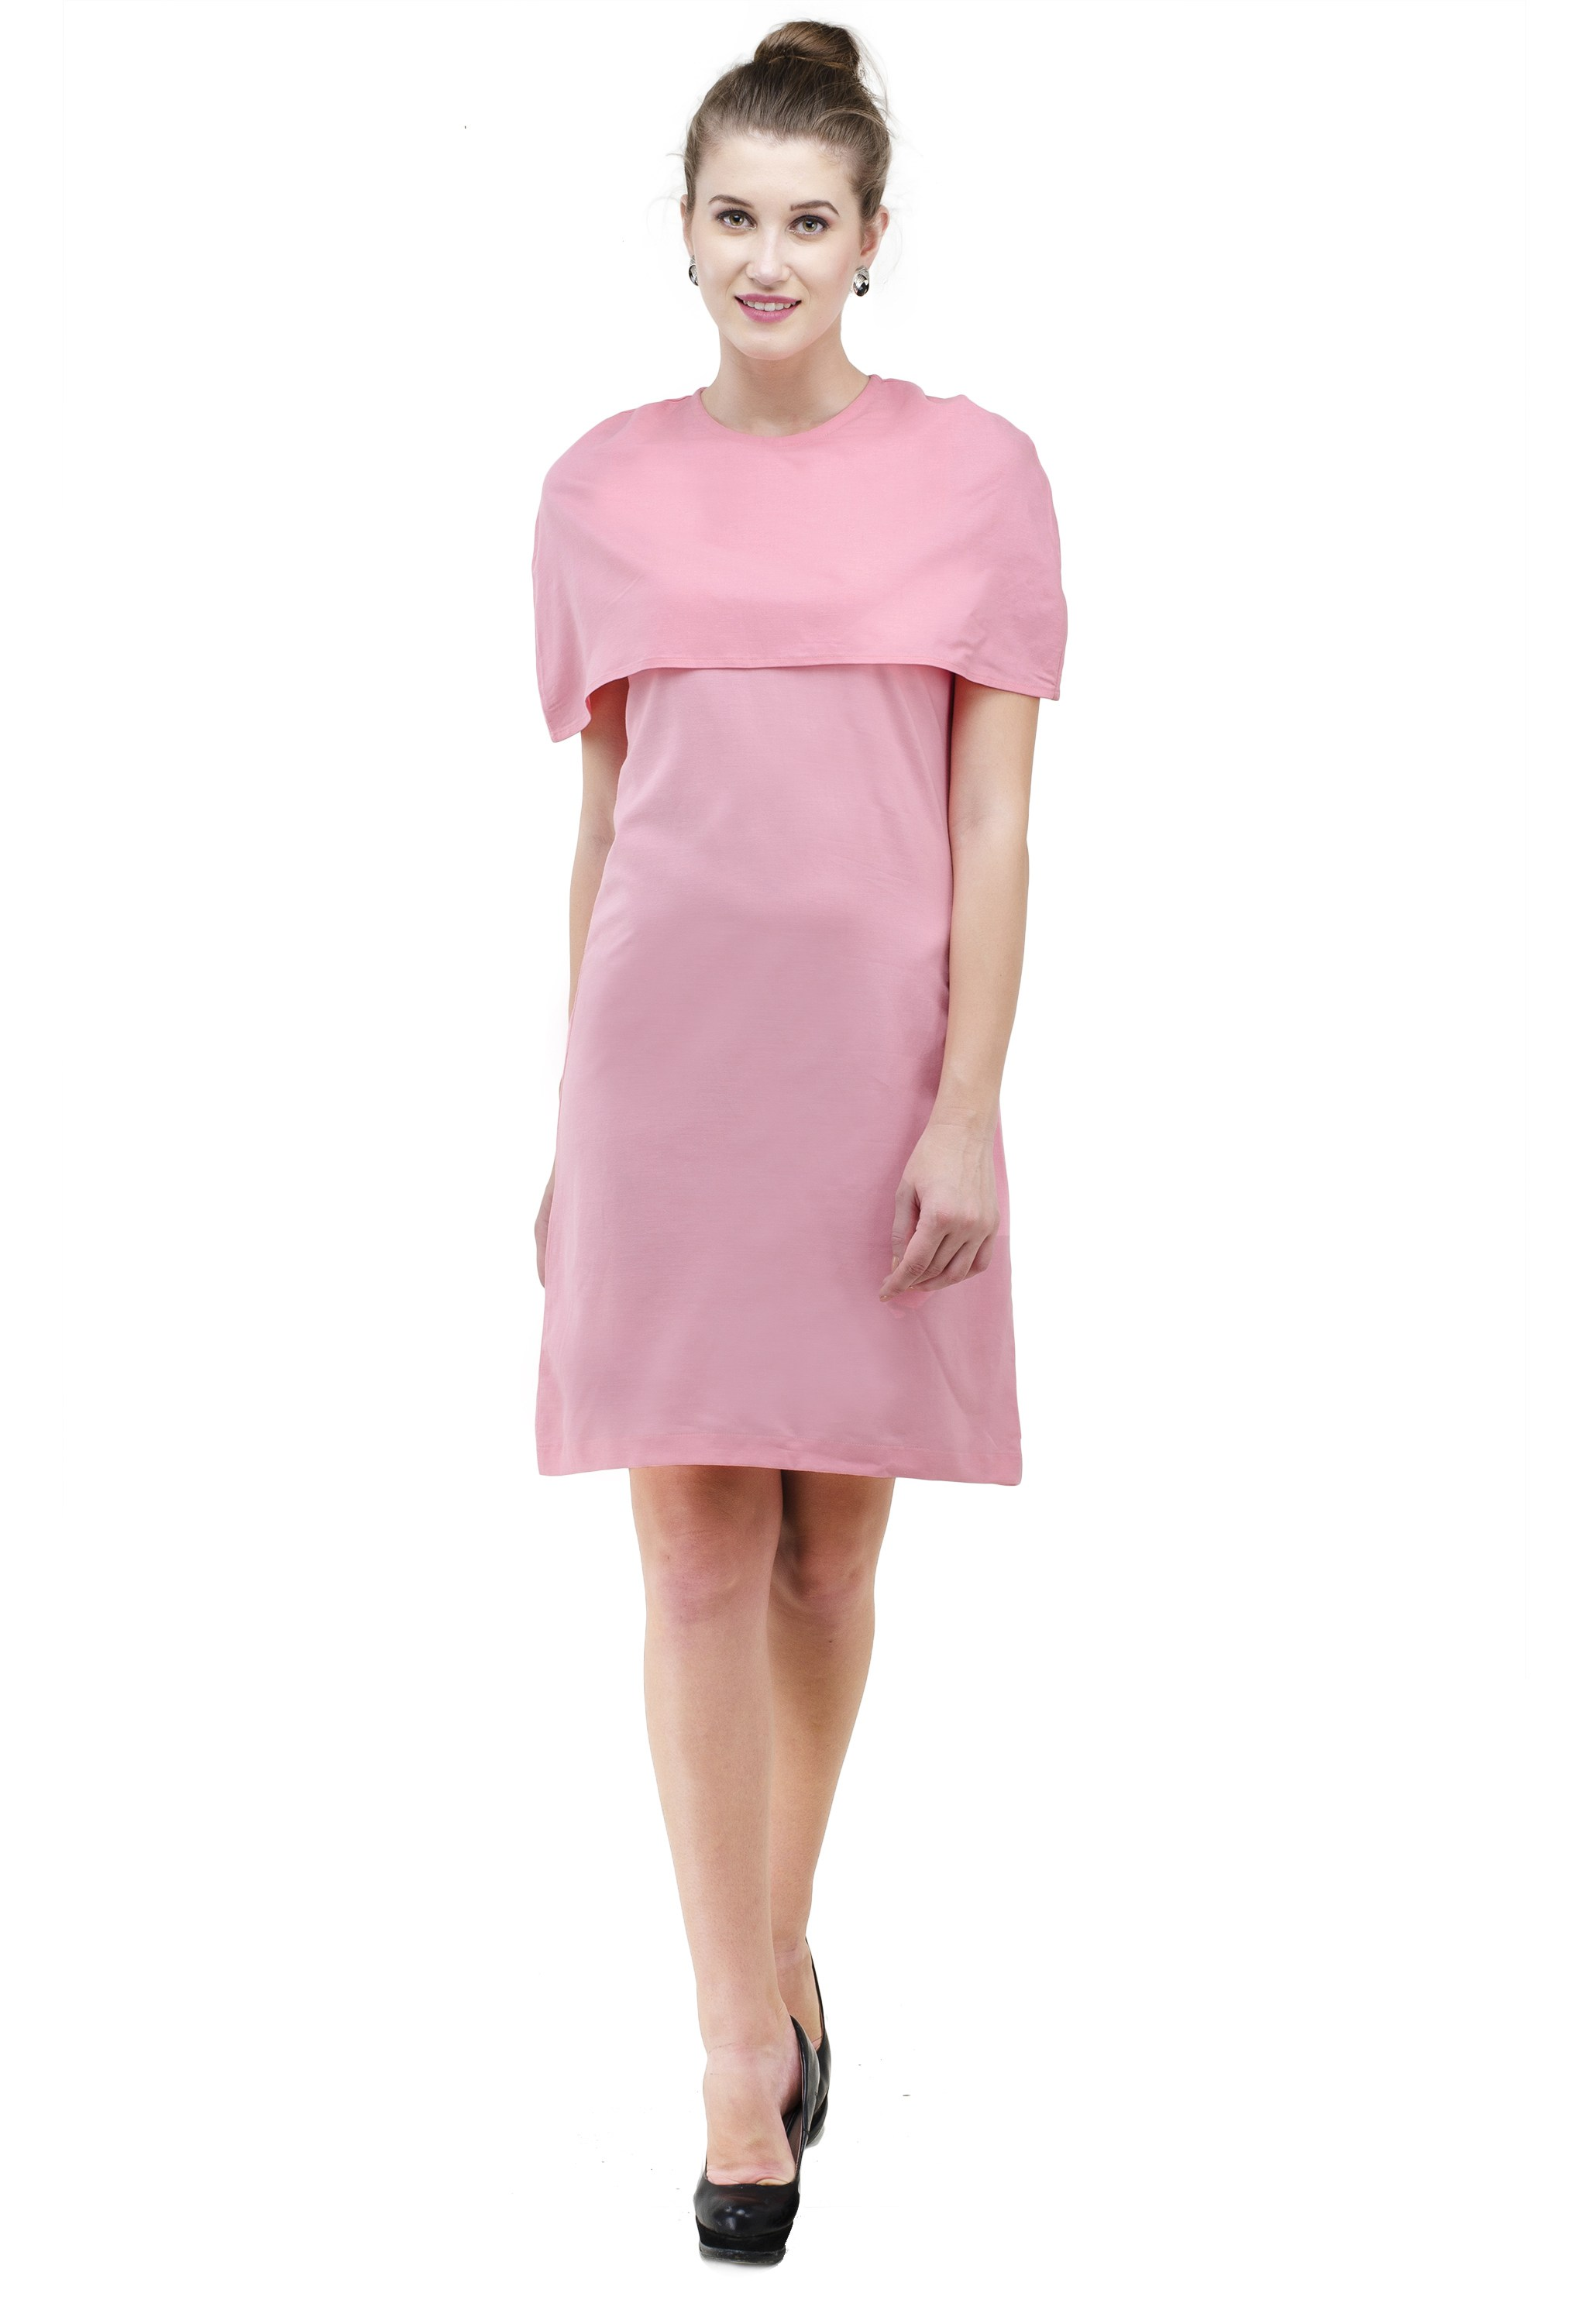 Pink dress with warm shoulders from Grab Your Garb